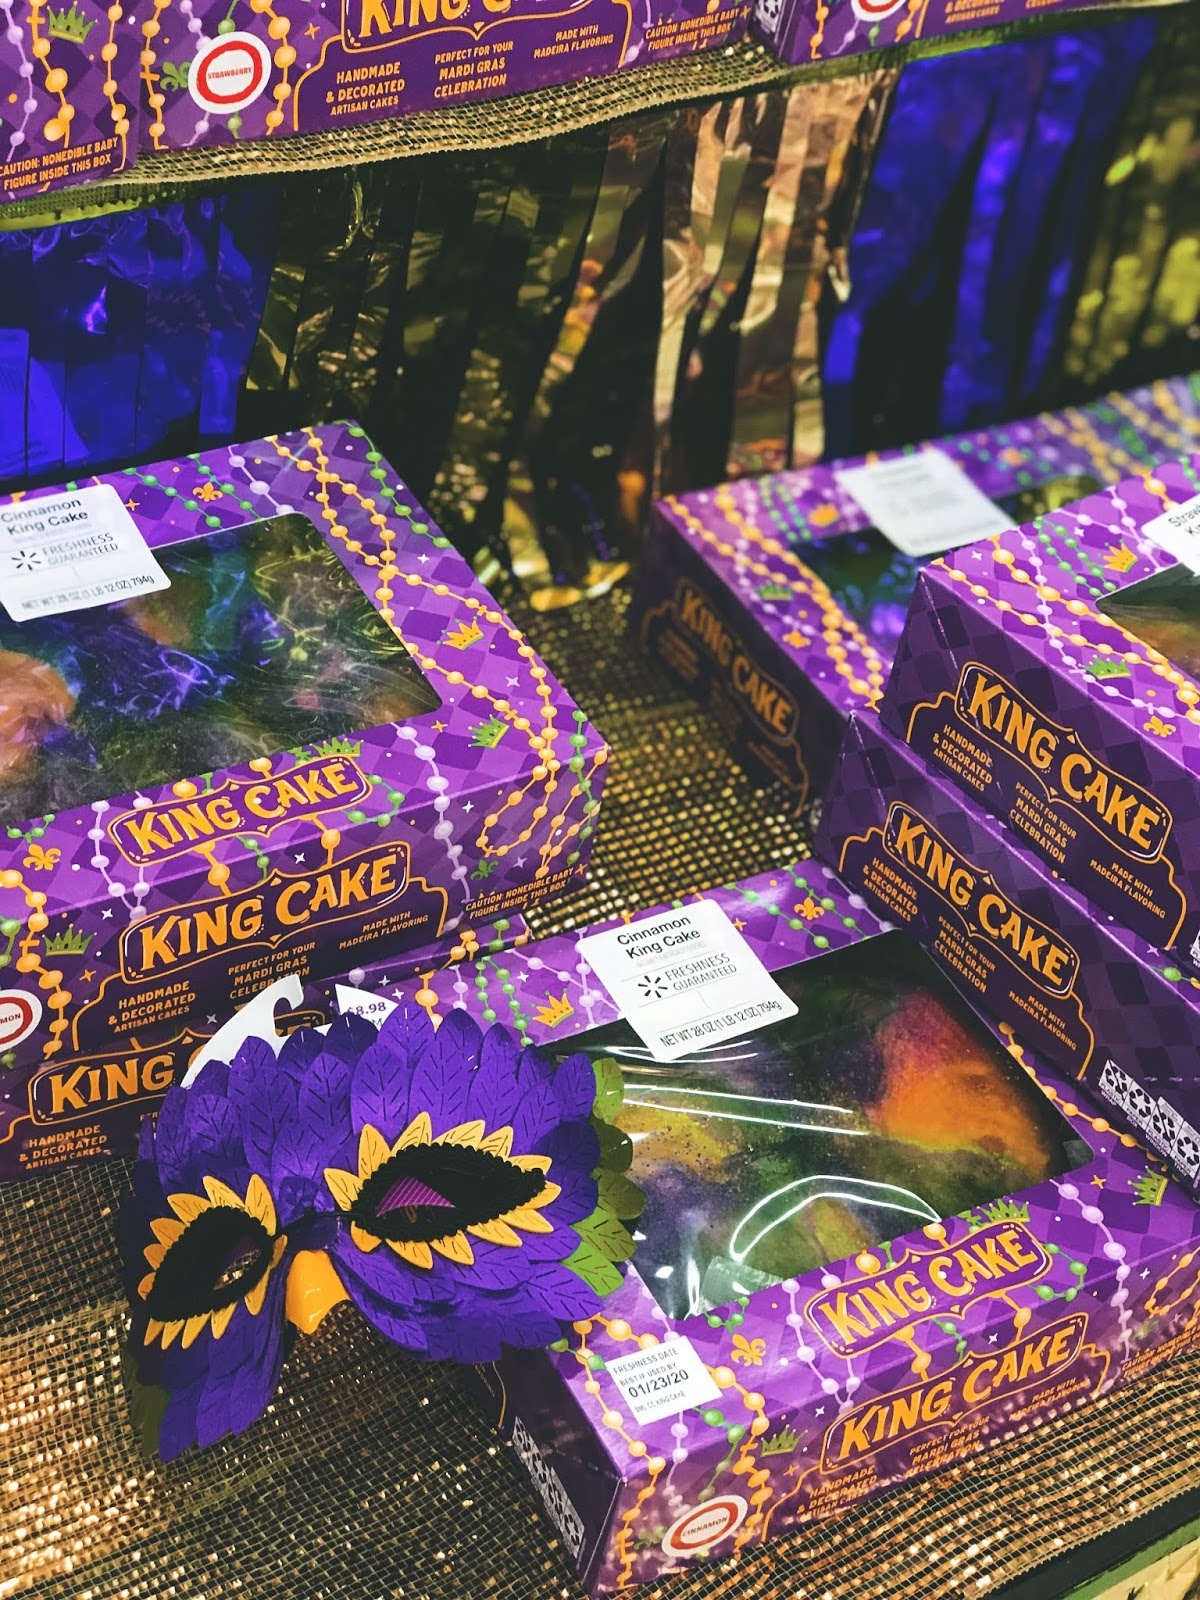 Shreveport Louisiana Foodie Files:  Mardi Gras Cakes, Coffee, Candy Apples And MORE!